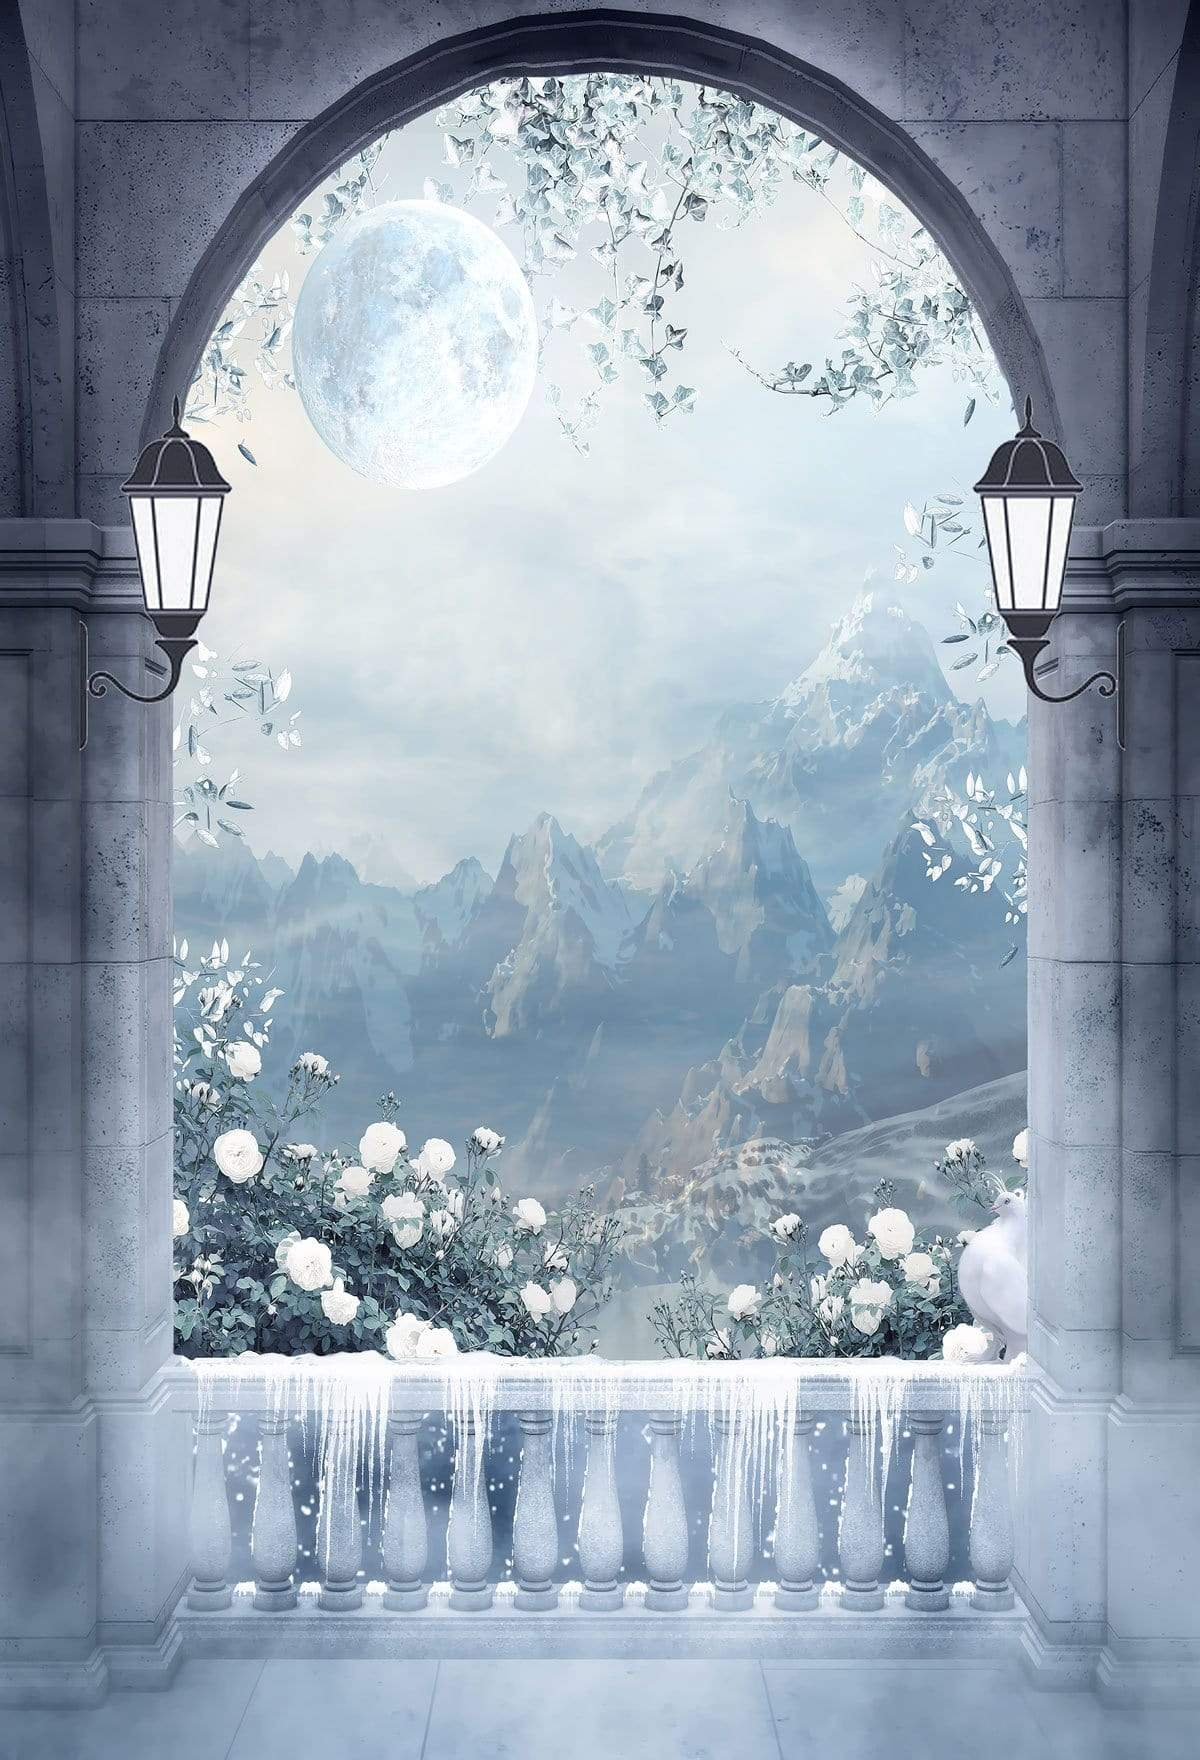 Load image into Gallery viewer, Kate Winter Mountain And Moon Arched Door with Snow Backdrop Designed by JFCC